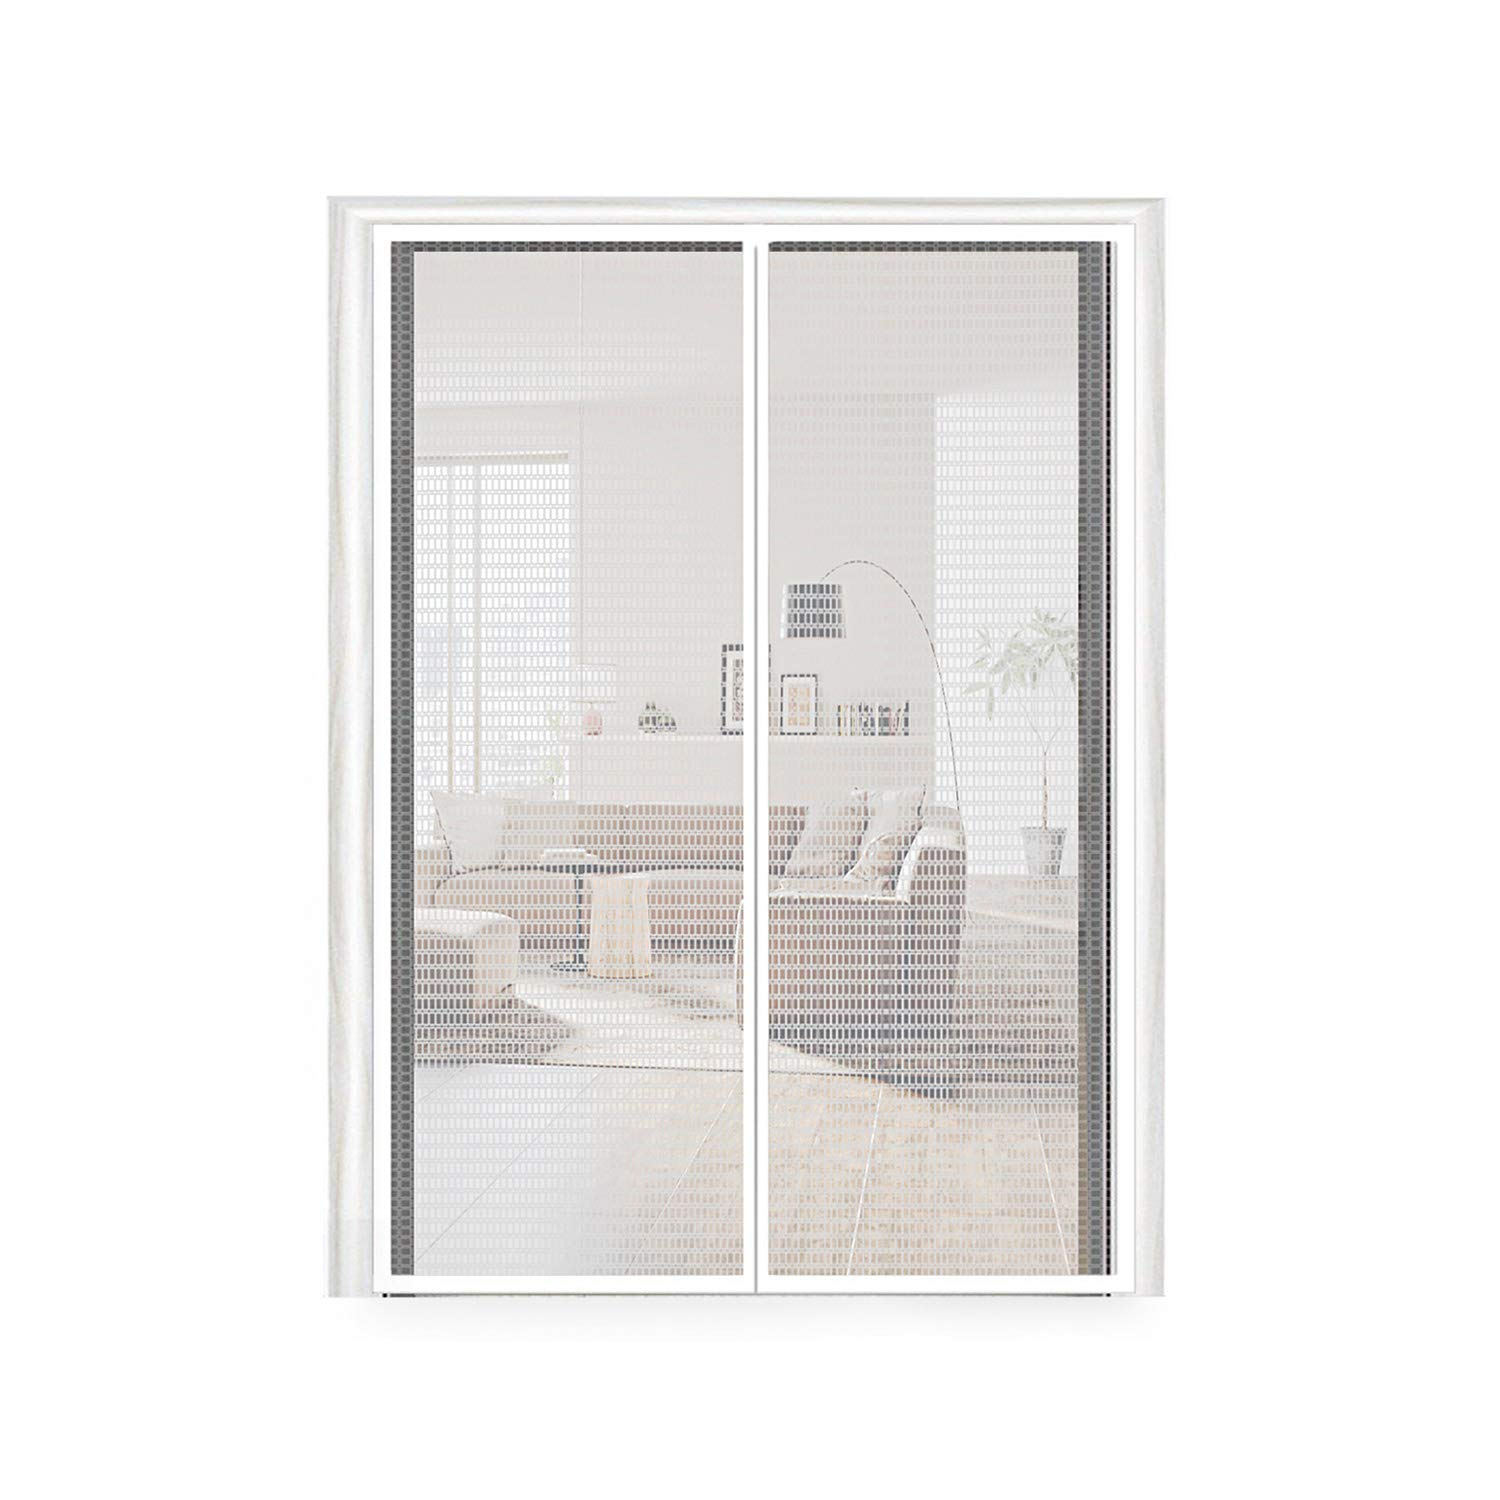 Magnetic Screen Door 72X80, Thermal and Insulation EVA Door Screen 72 X 80 Fit Doors Frame Size Up to 70W X 79''H Max with Full Frame Hook & Loop Magnet French Door Curtain(72x80 Inch, Transparent) by MAGZO